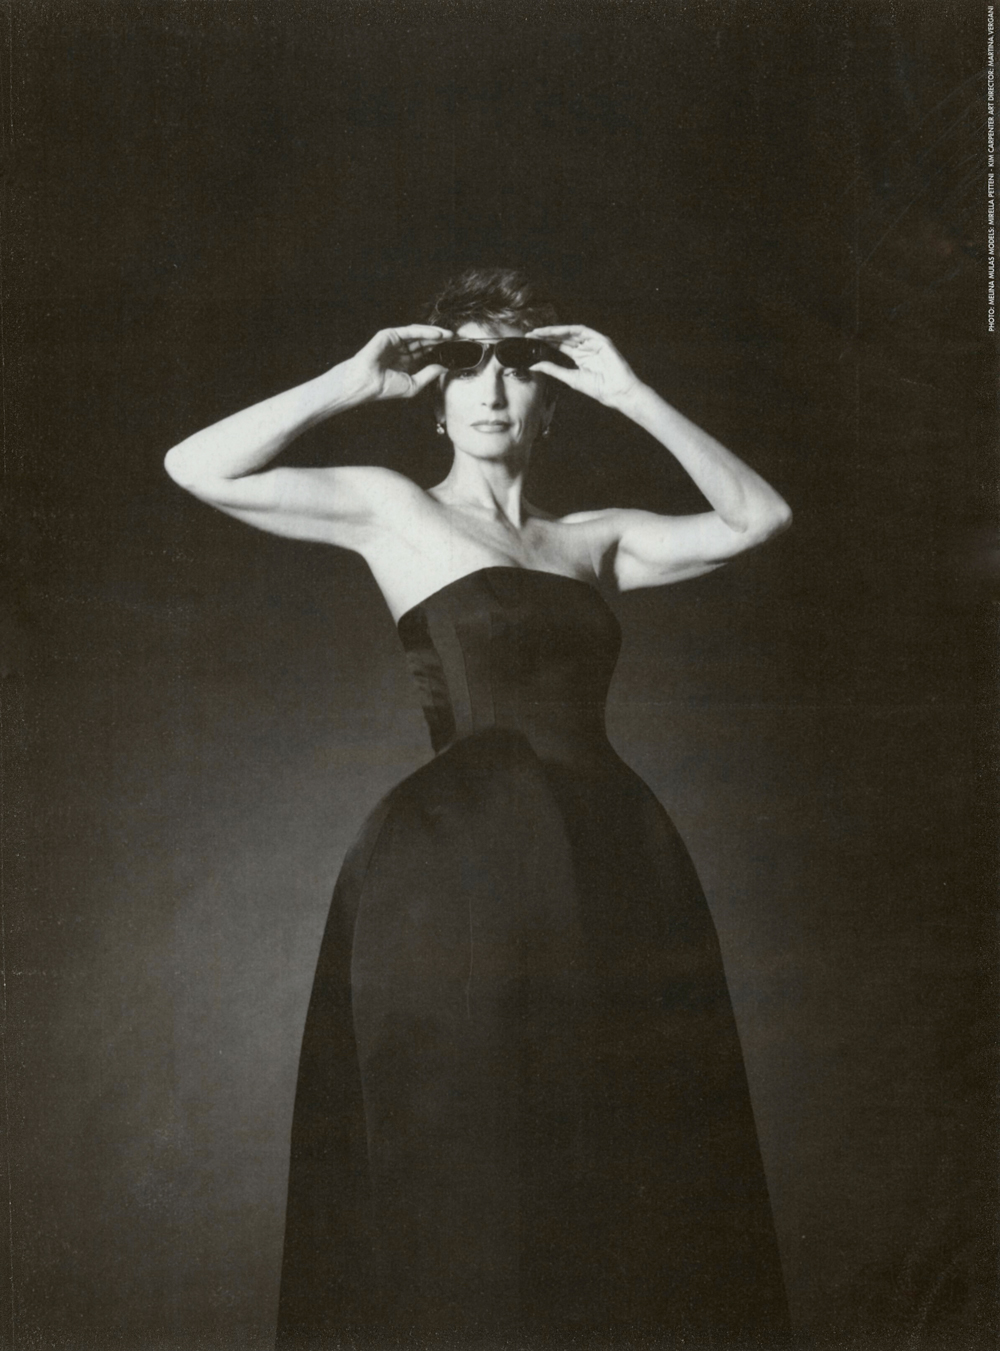 Mila Schon 1996-1997 campaign photographed by Melina Mulas